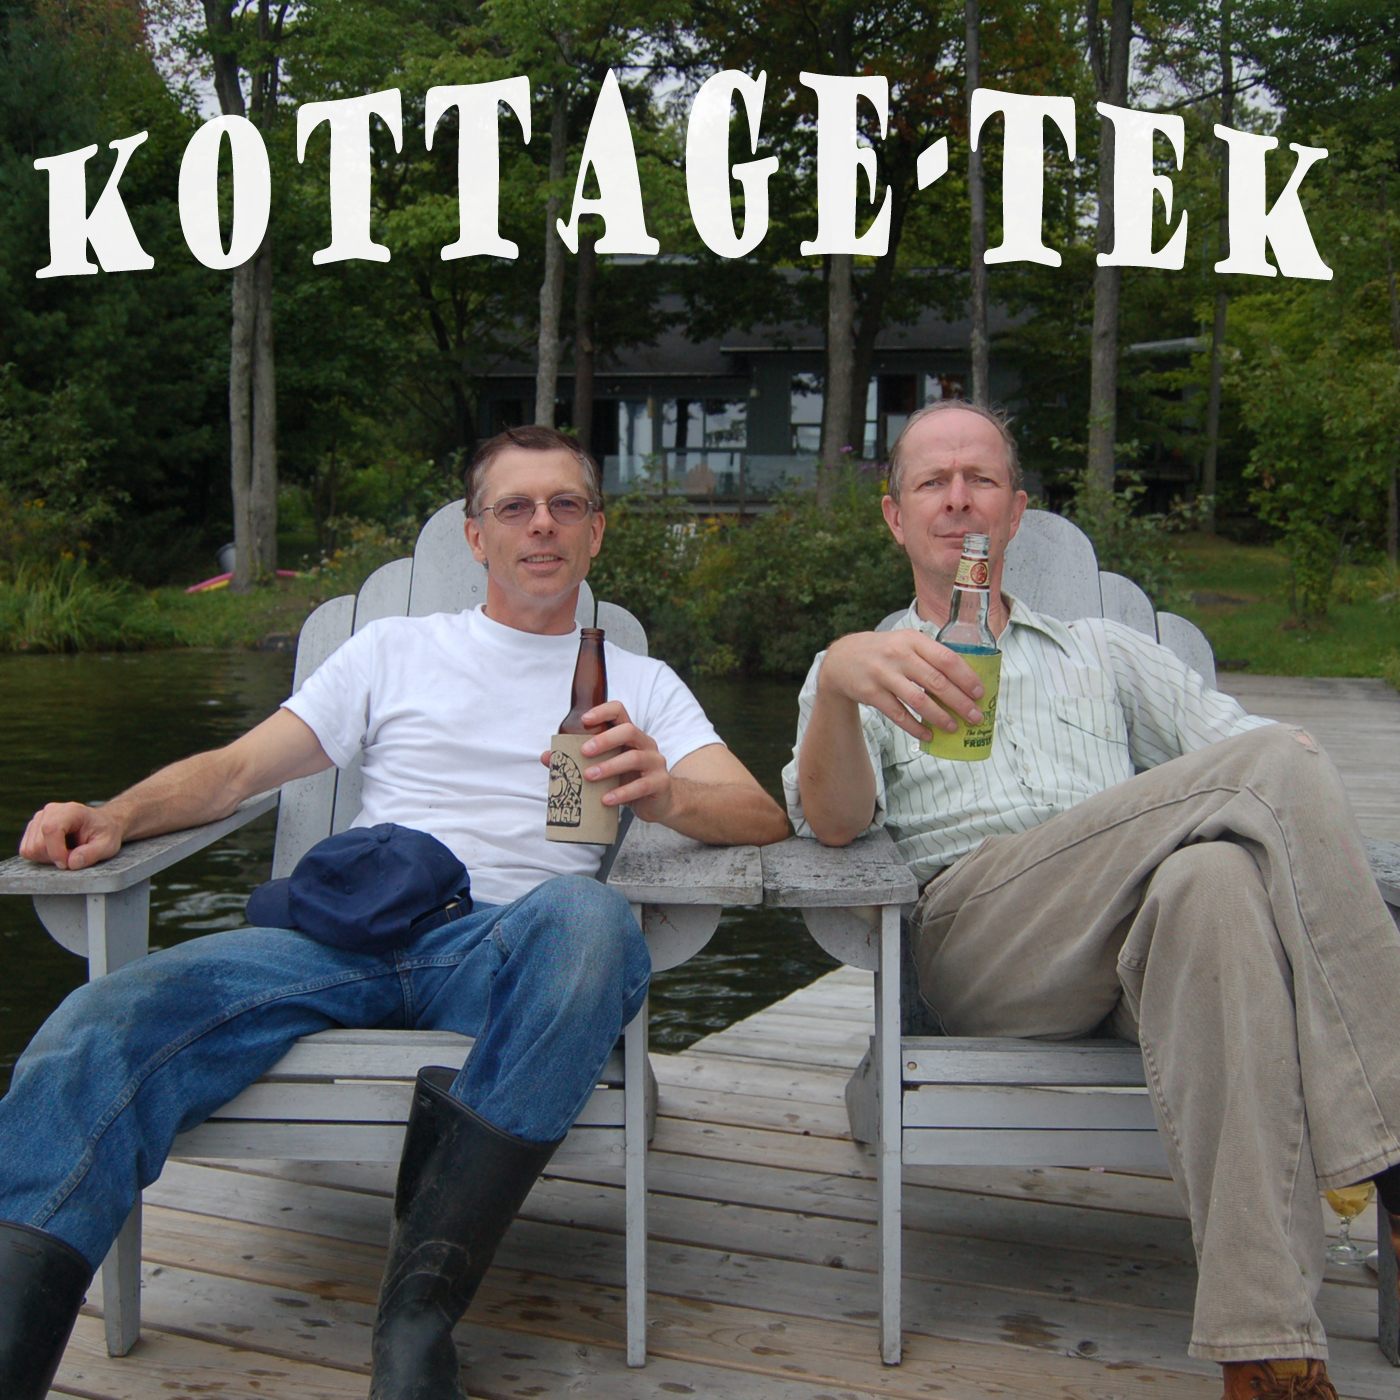 Kottage-tek - MP3 Edition